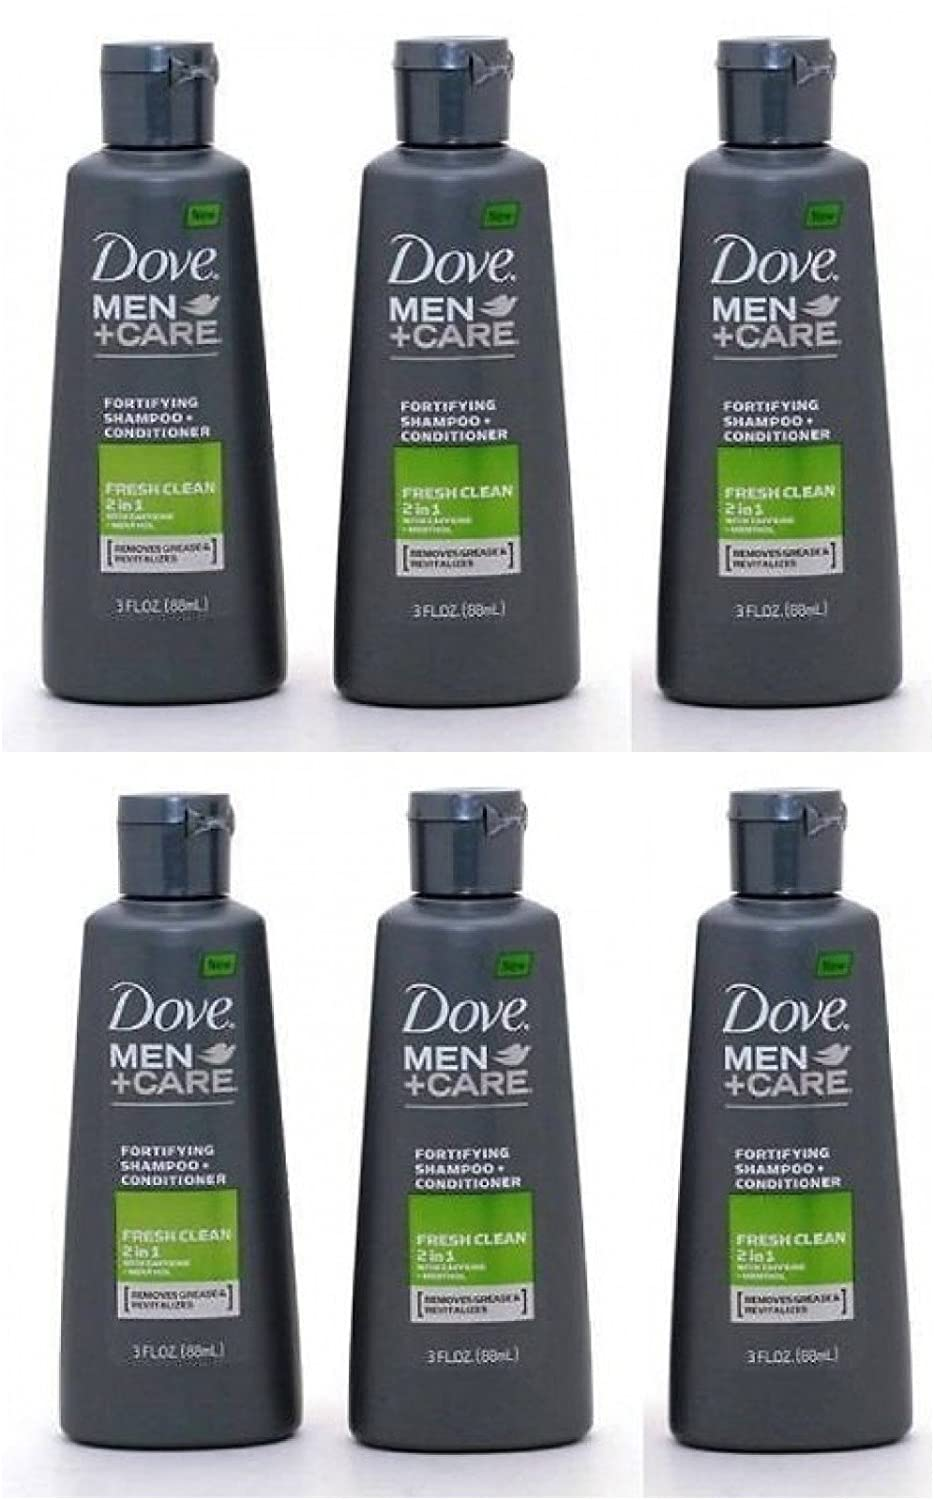 Dove Men+Care 2 in 1 Shampoo + Conditioner Fresh Clean 3 Oz Travel Size (Pack of 6)